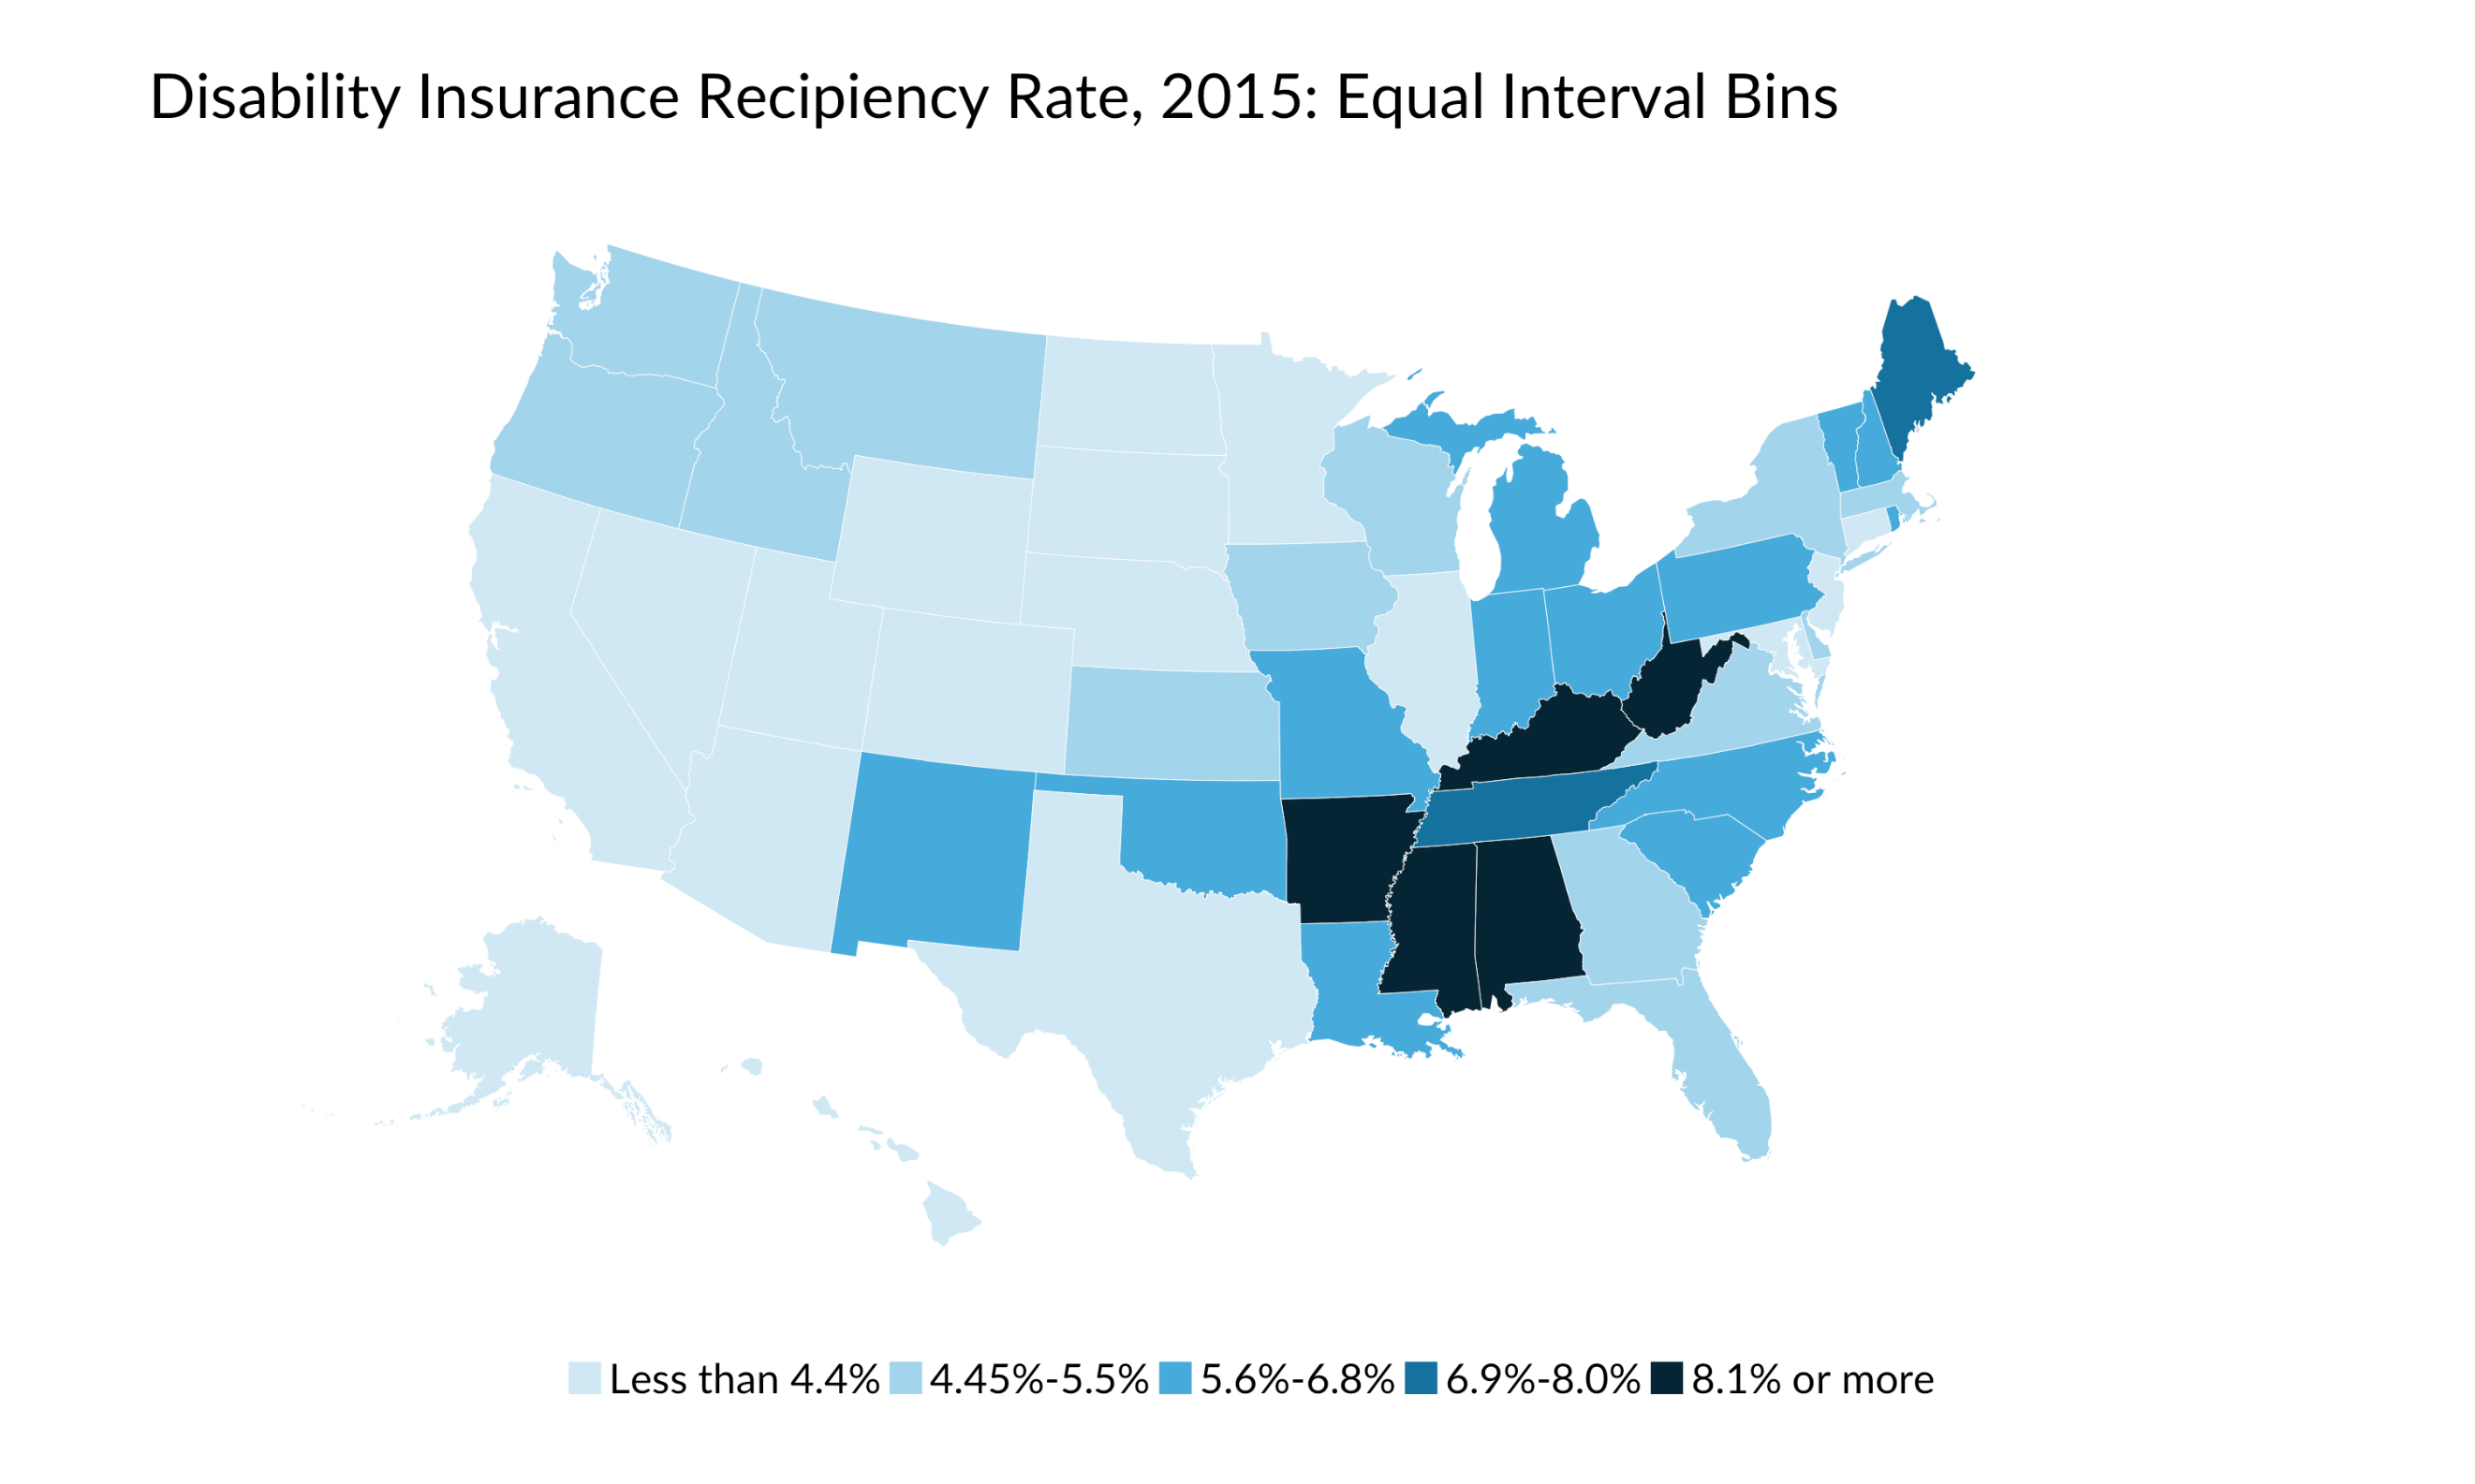 equal interval bins map of disability insurance recipient rate, 2015